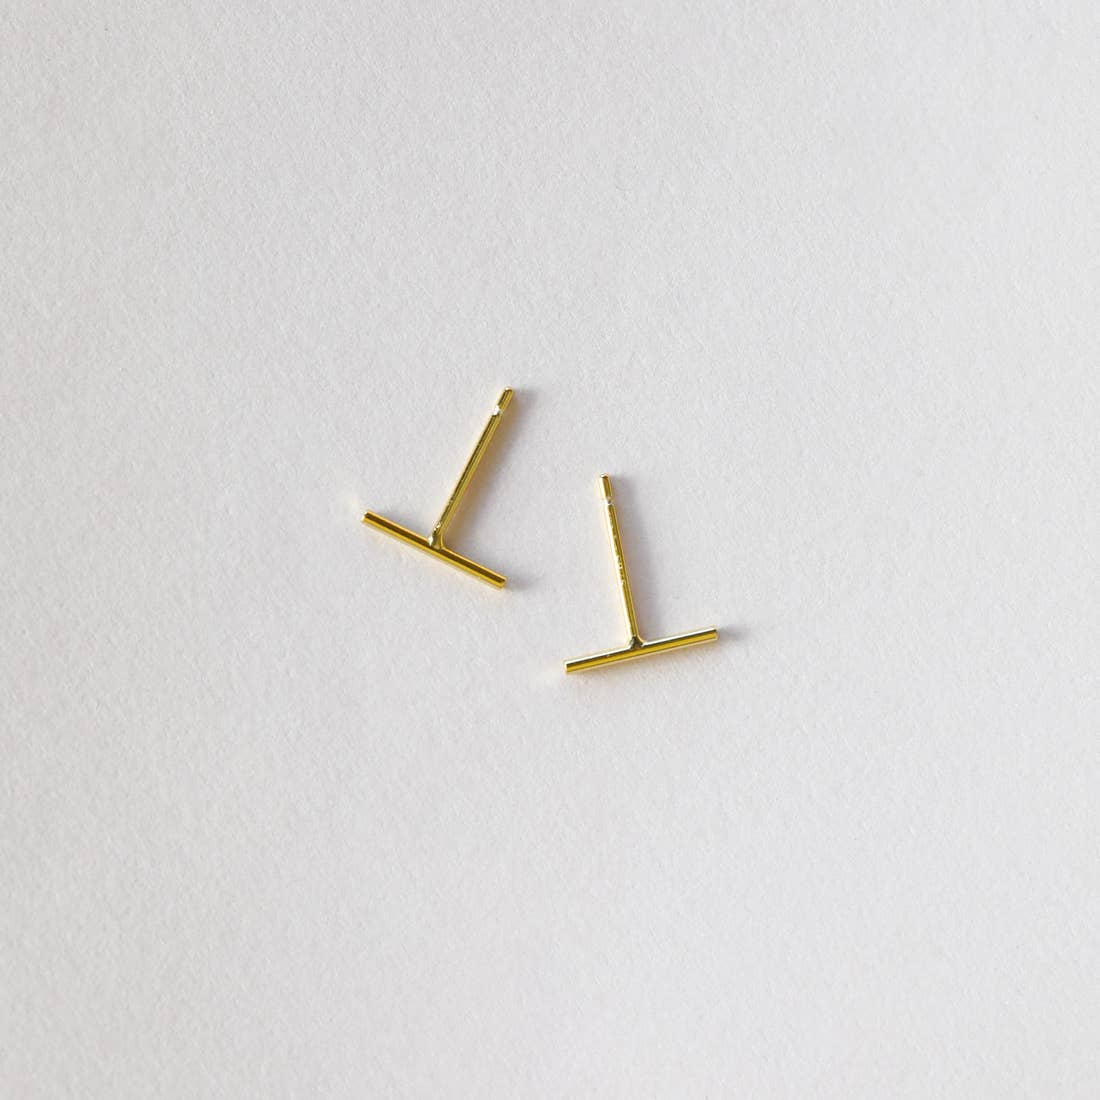 Image of Jax Kelly-Minimalist Bar Earrings